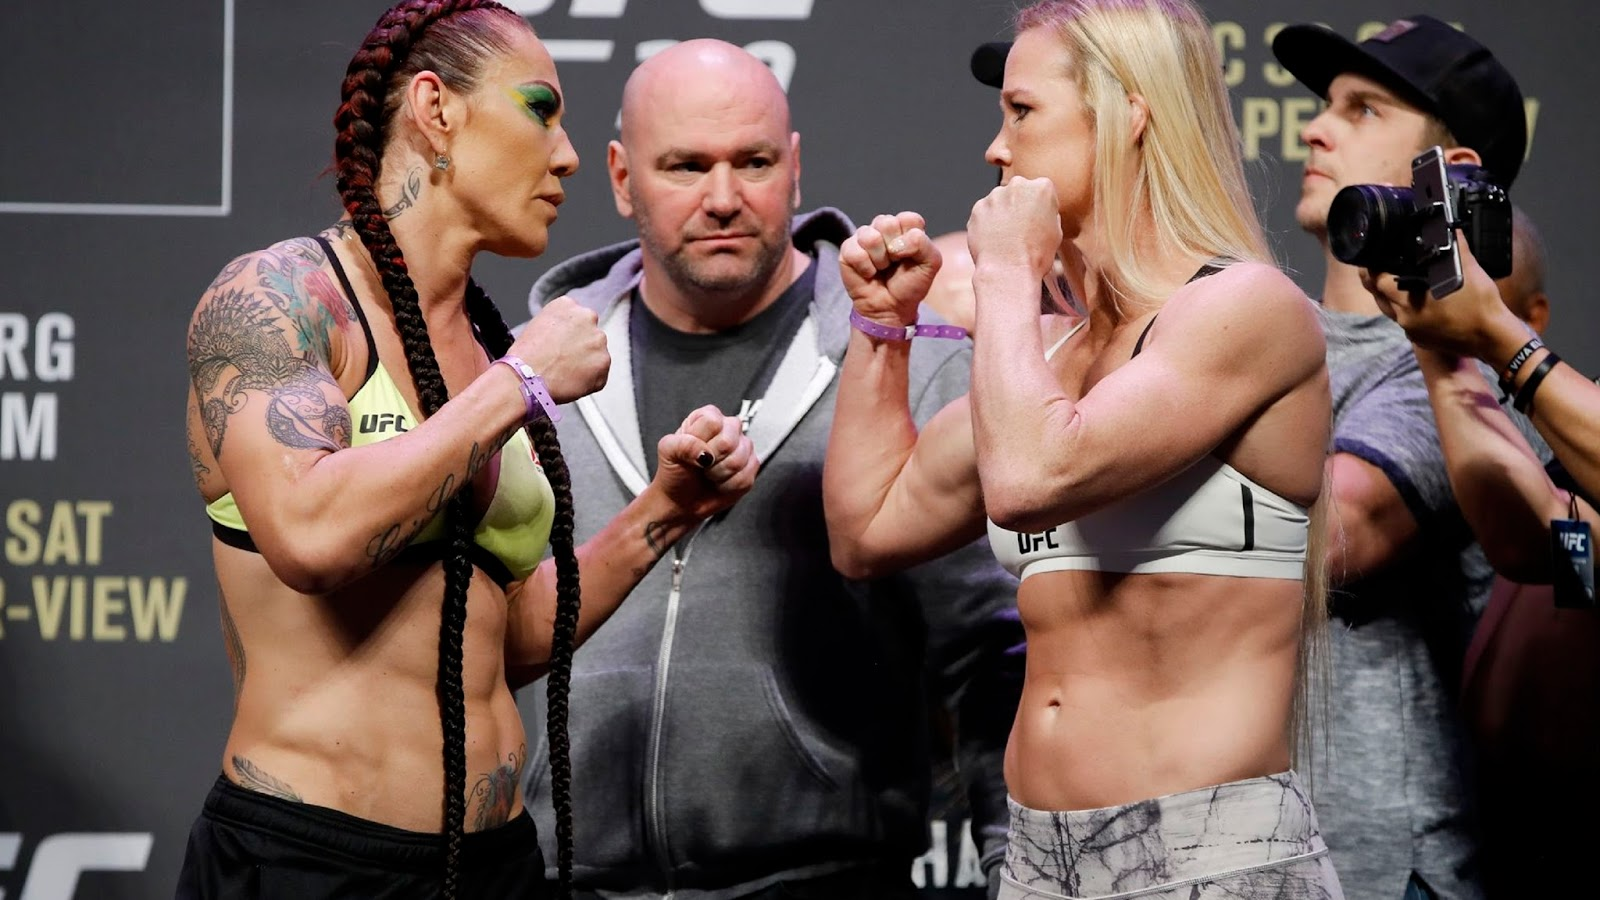 UFC 219  CRIS CYBORG VS. HOLLY HOLM